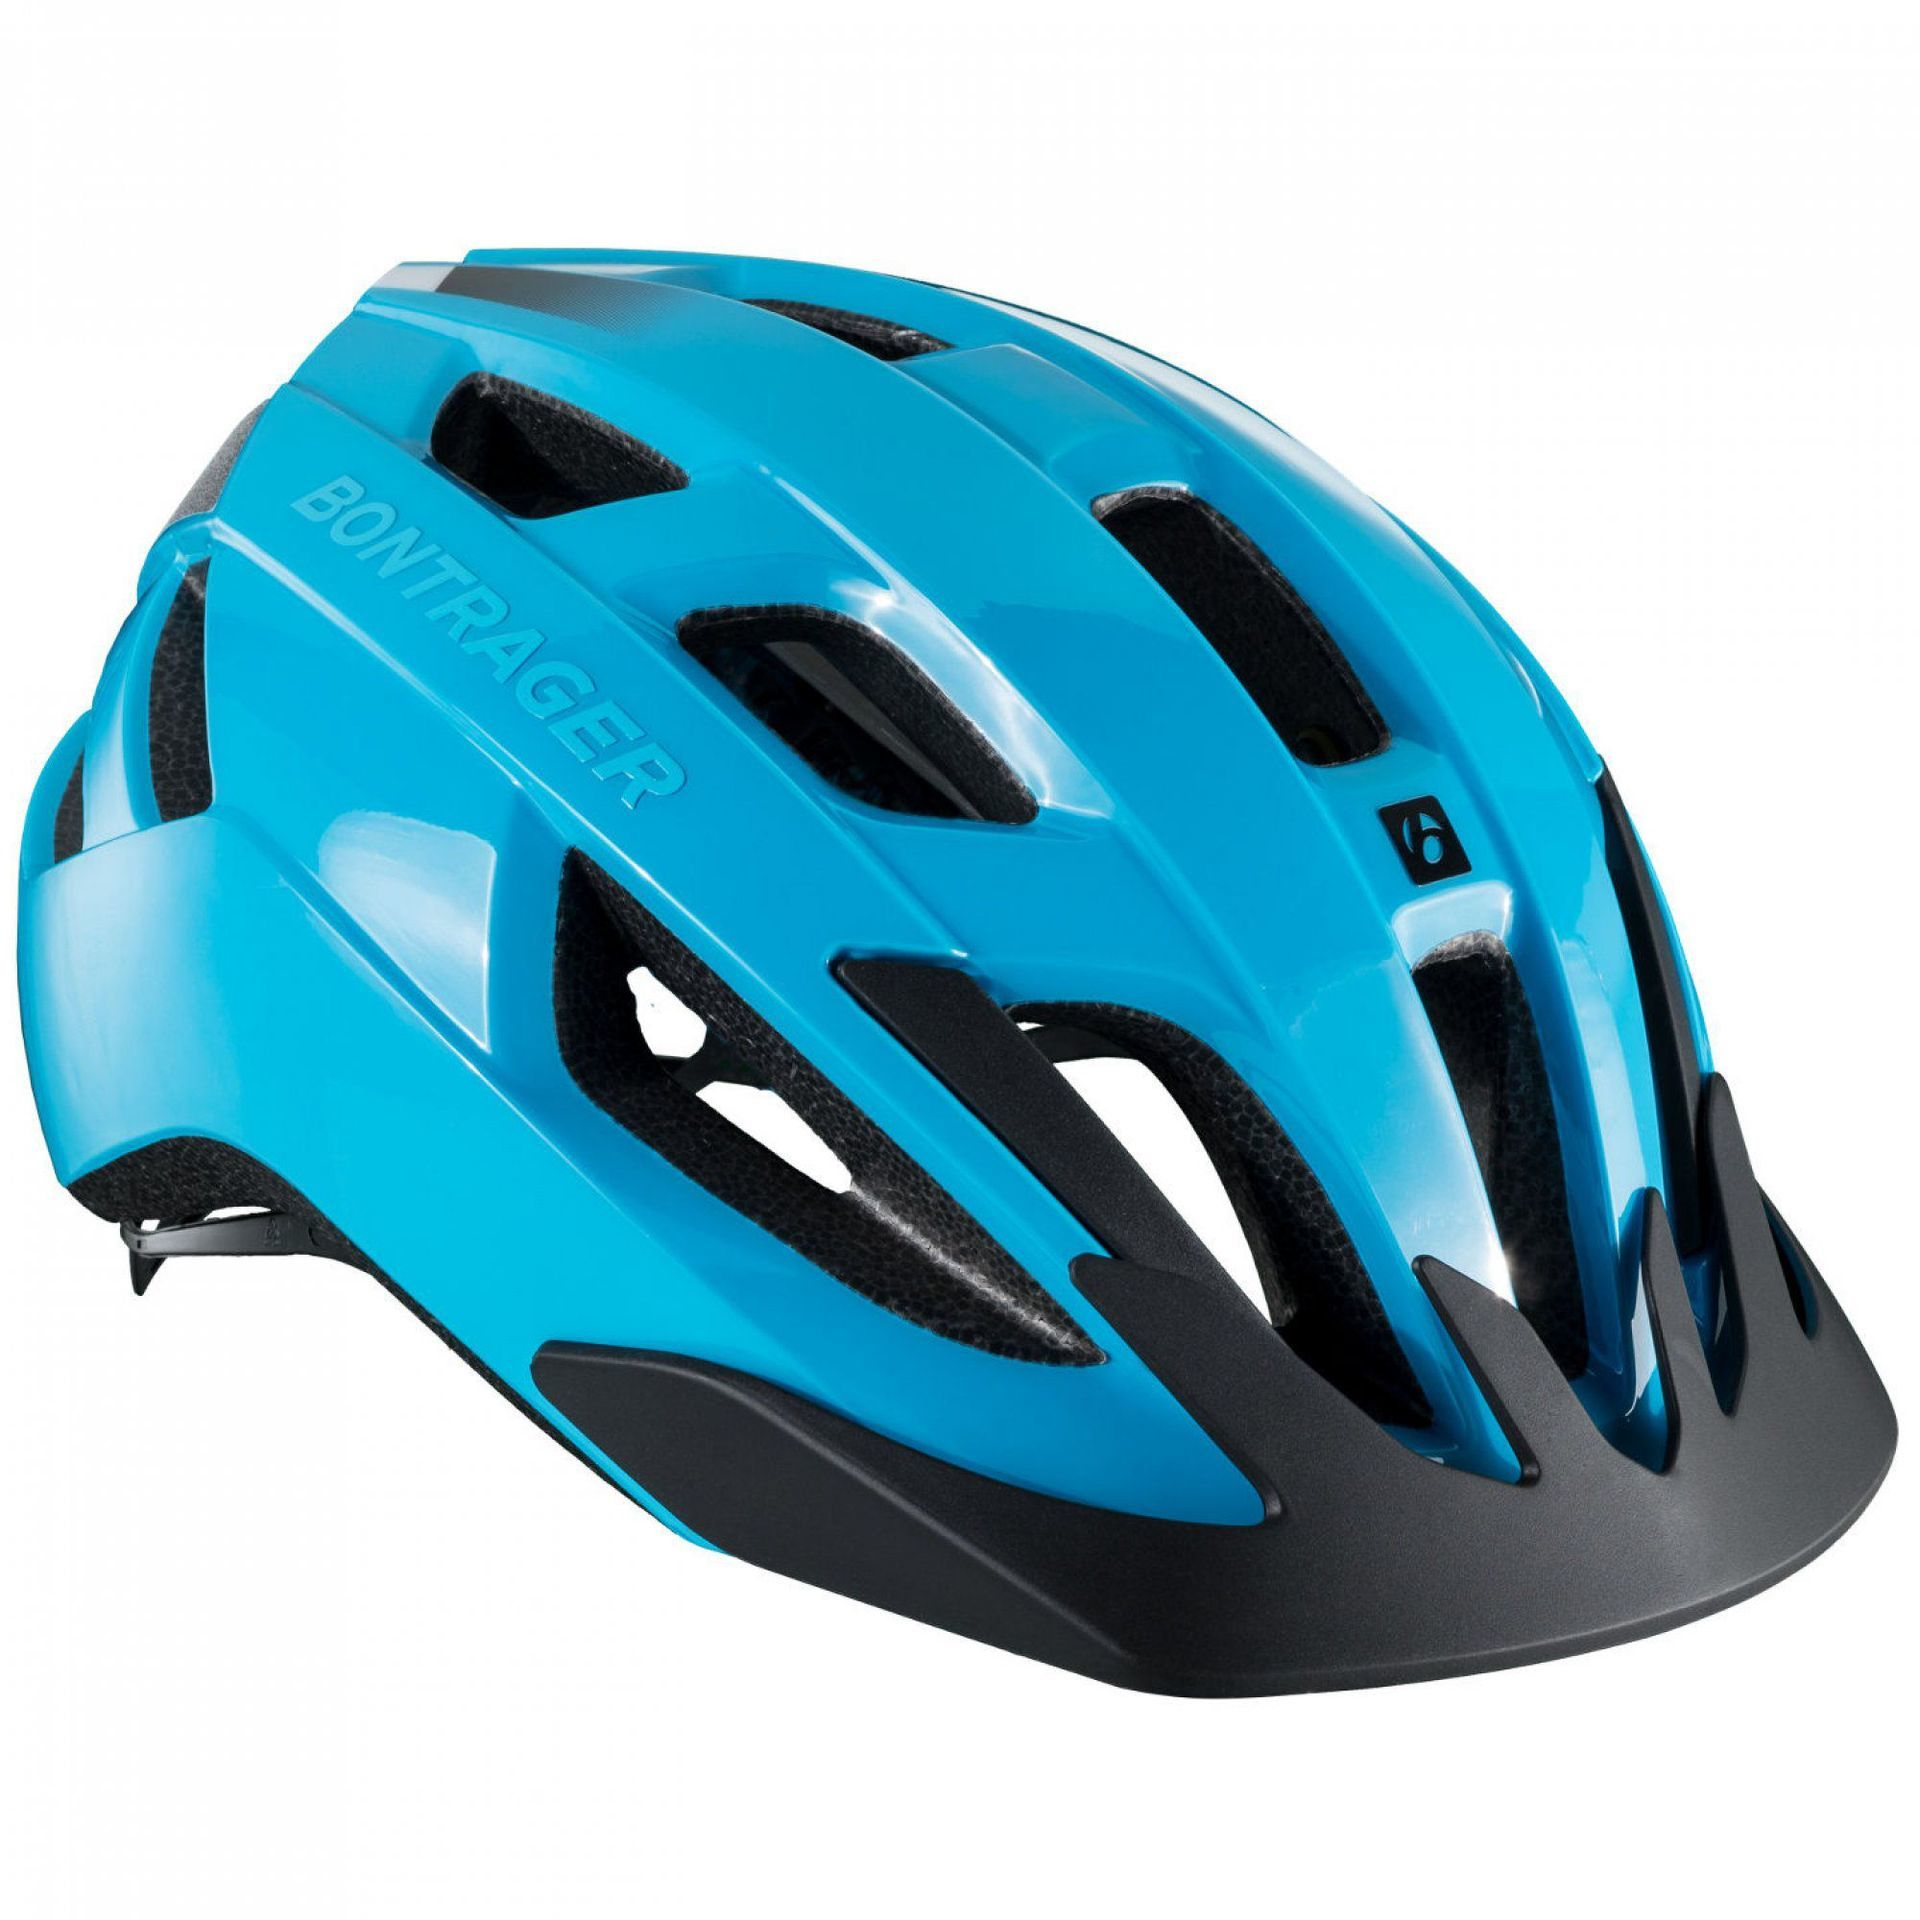 KASK ROWEROWY BONTRAGER SOLSTICE YOUTH 552136 1